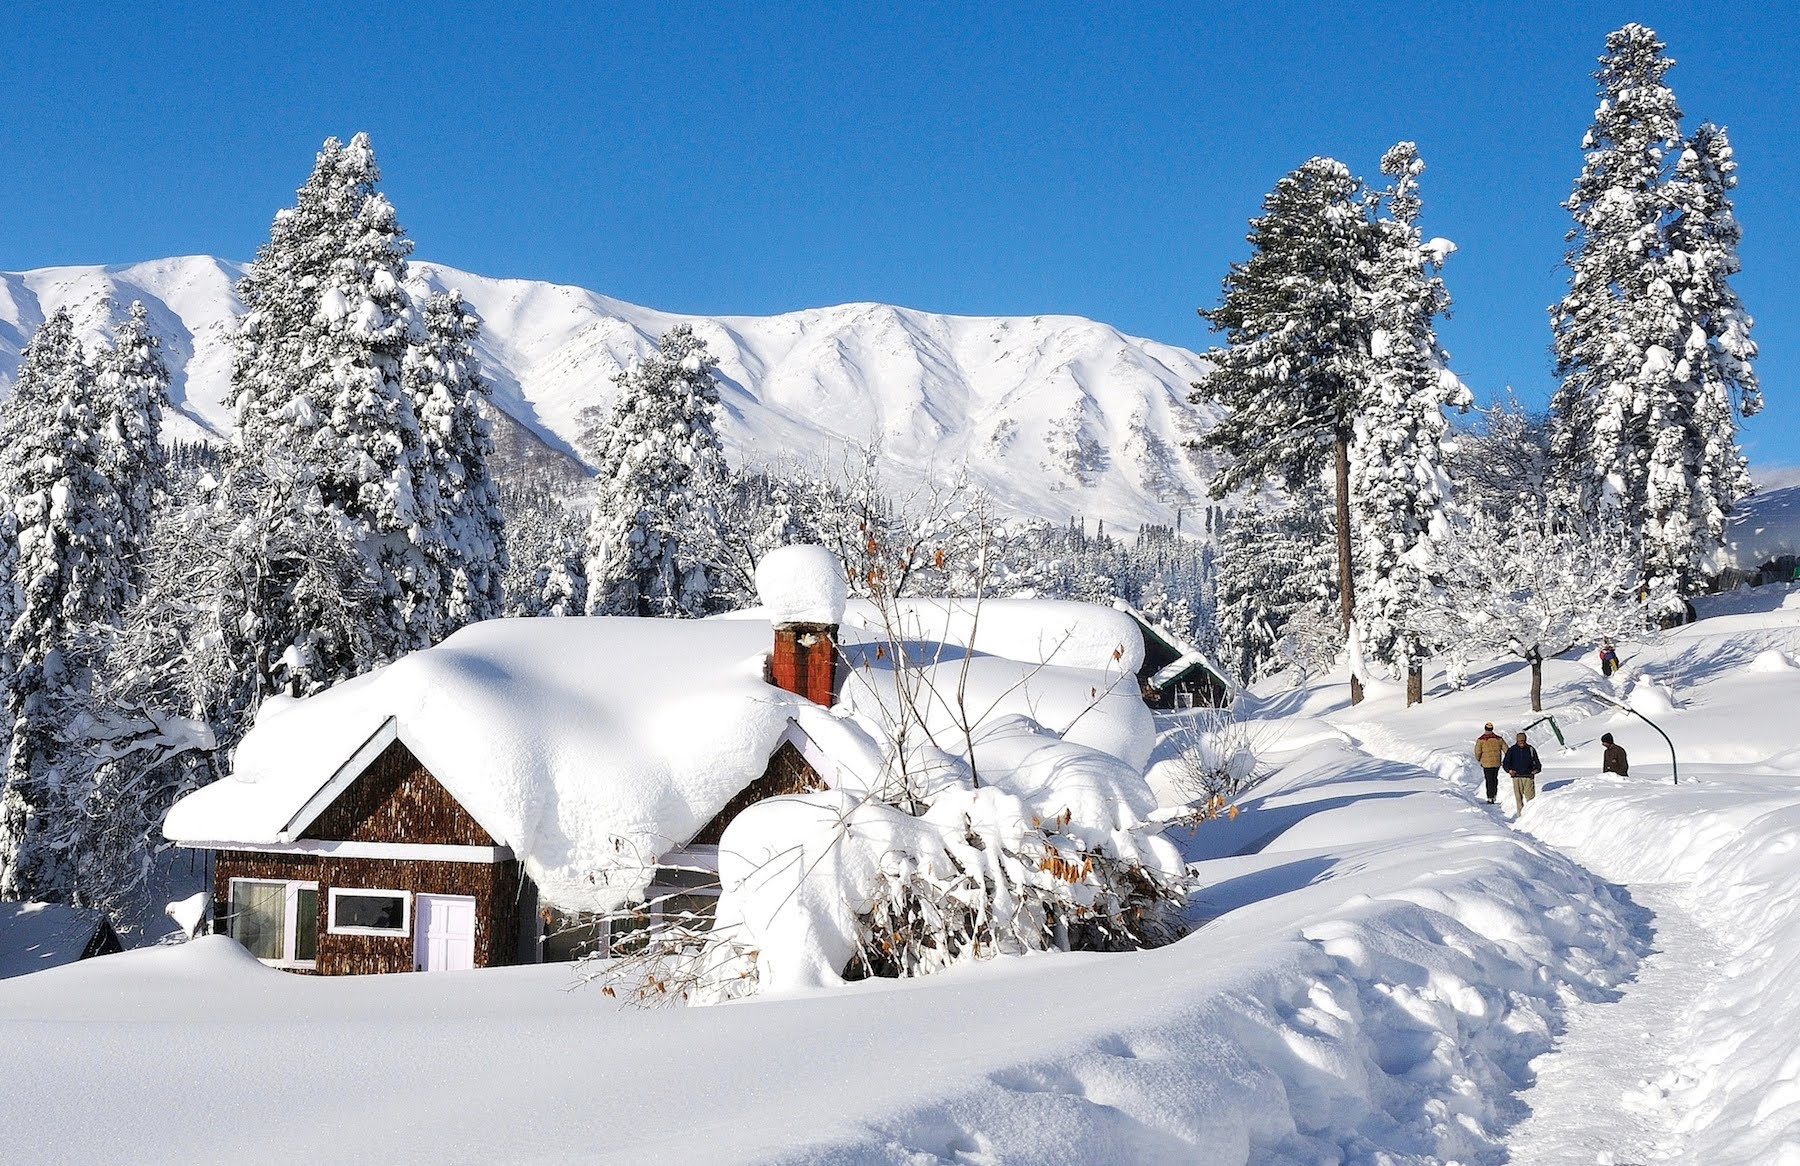 14 new travel destinations in Jammu & Kashmir will be kept open for the tourists soon